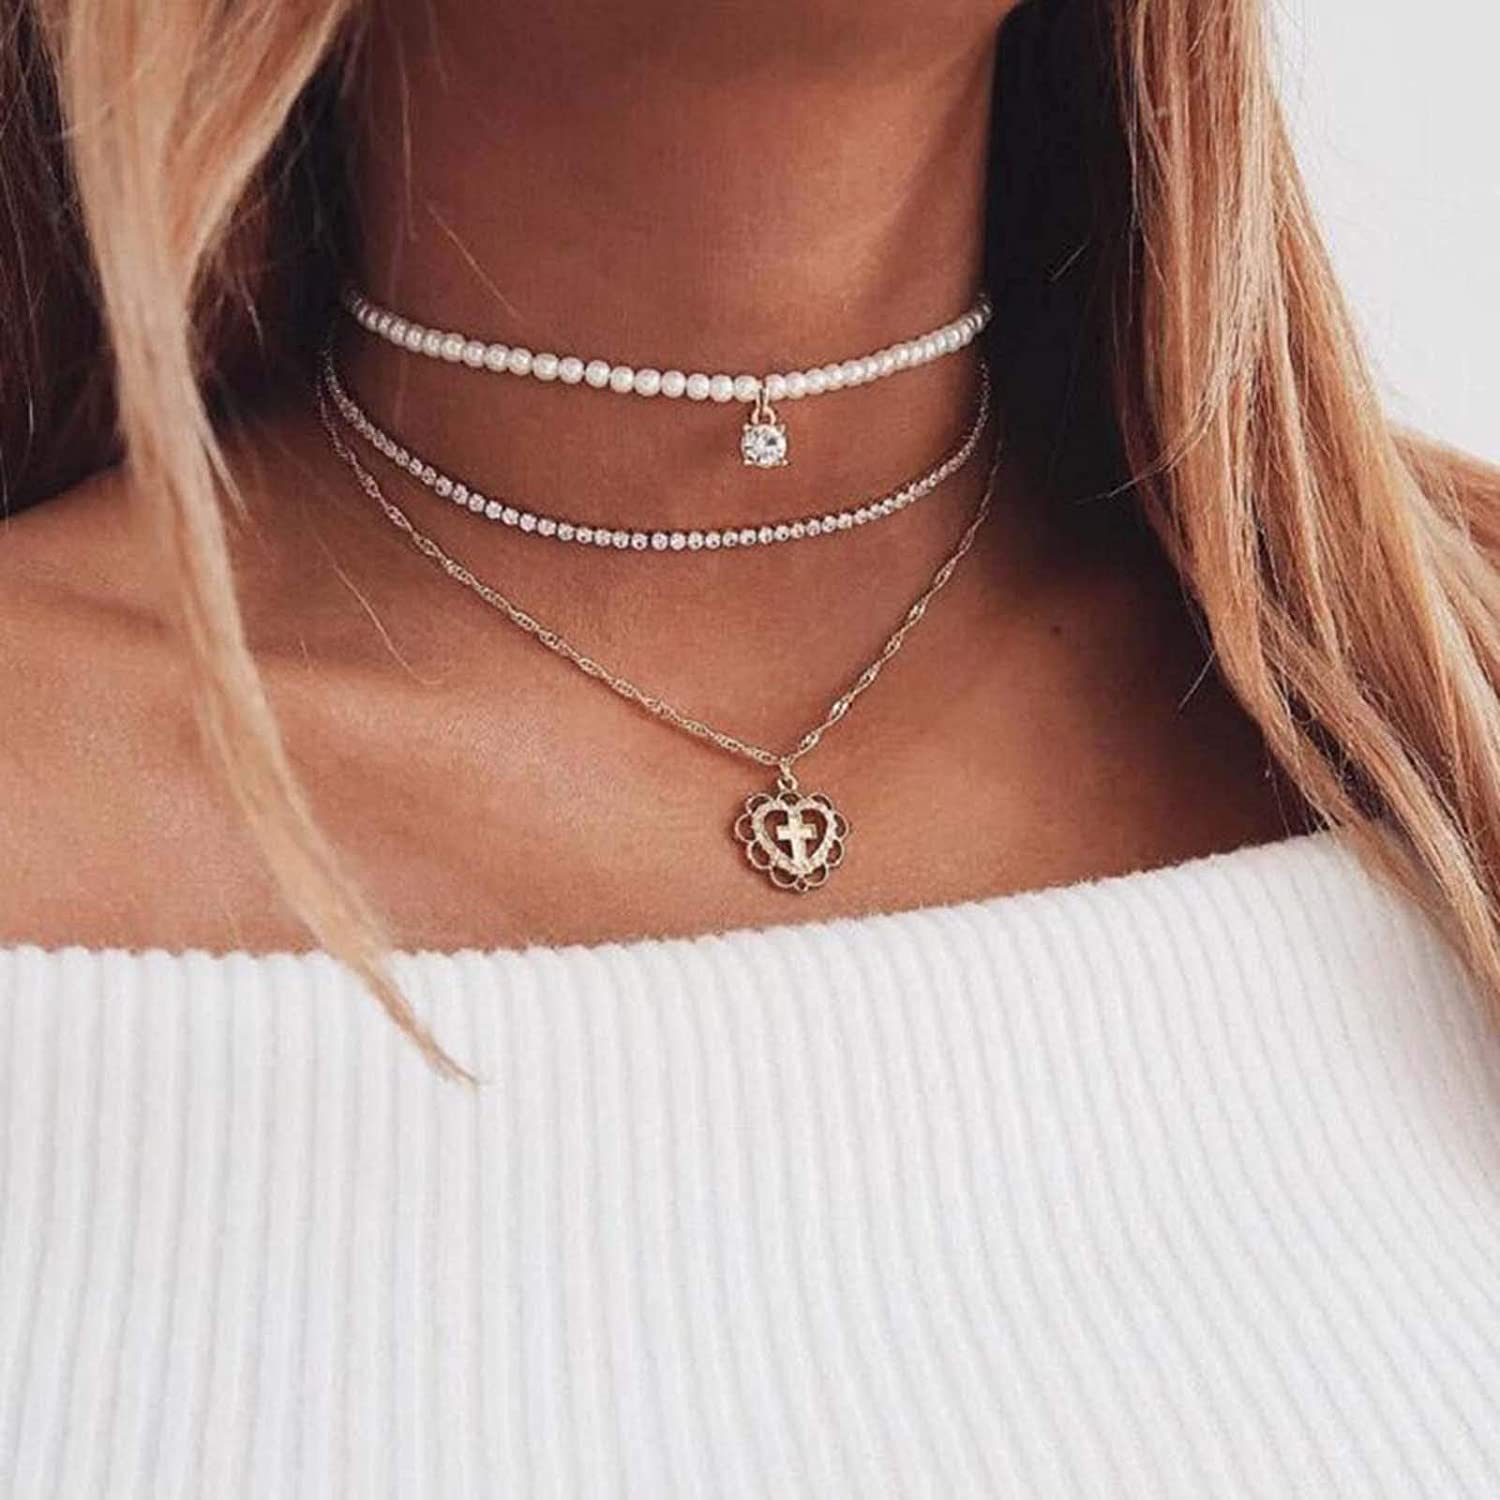 Kakaco Crystal Pearl Choker Necklaces Heart Layered Pendant Necklace Gold Chain Jewelry for Women and Girls